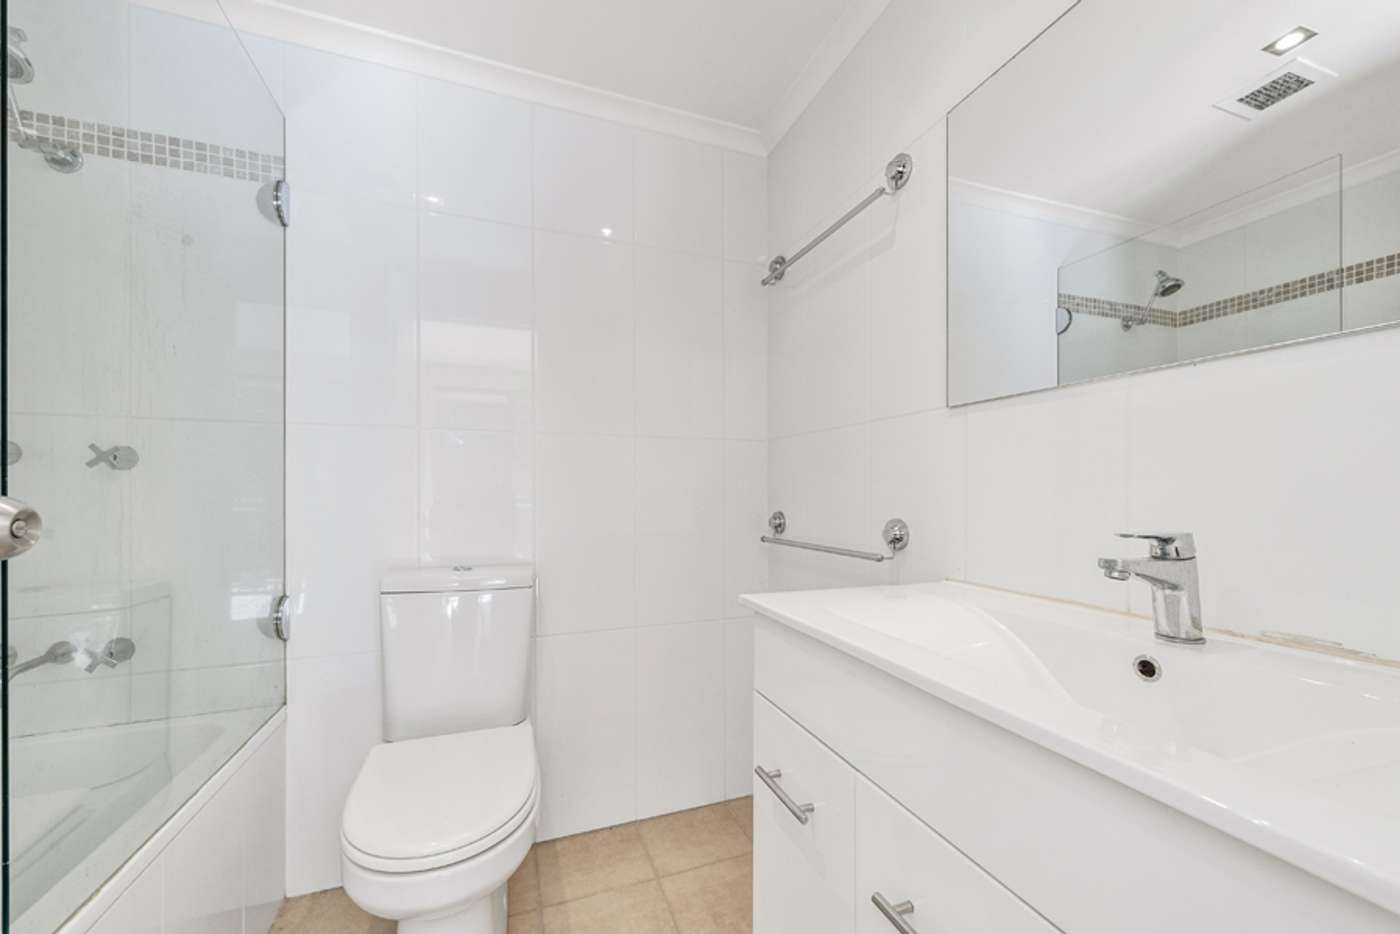 Fifth view of Homely apartment listing, 105/75-79 Jersey Street North, Hornsby NSW 2077